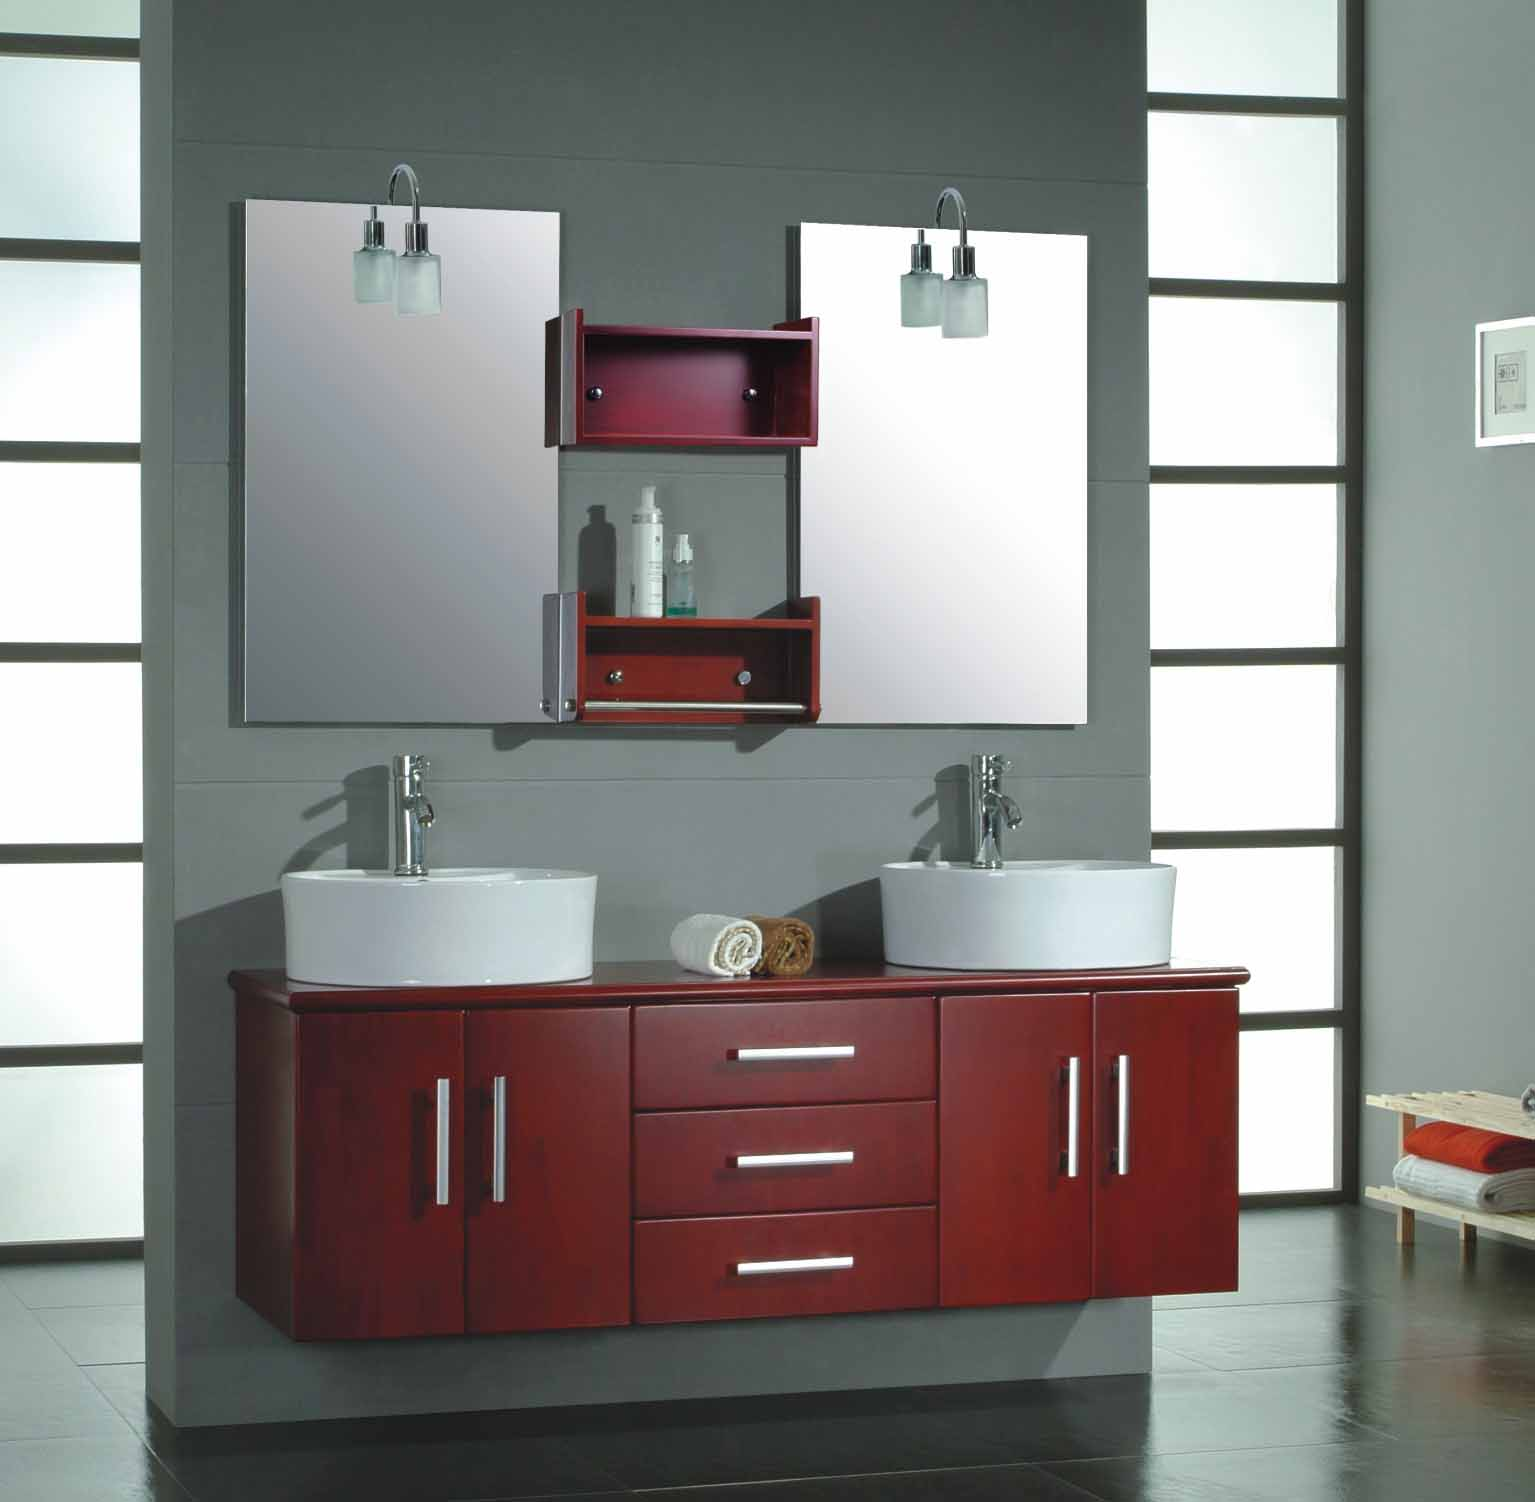 Interior design ideas bathroom furniture choosing for Design your bathroom